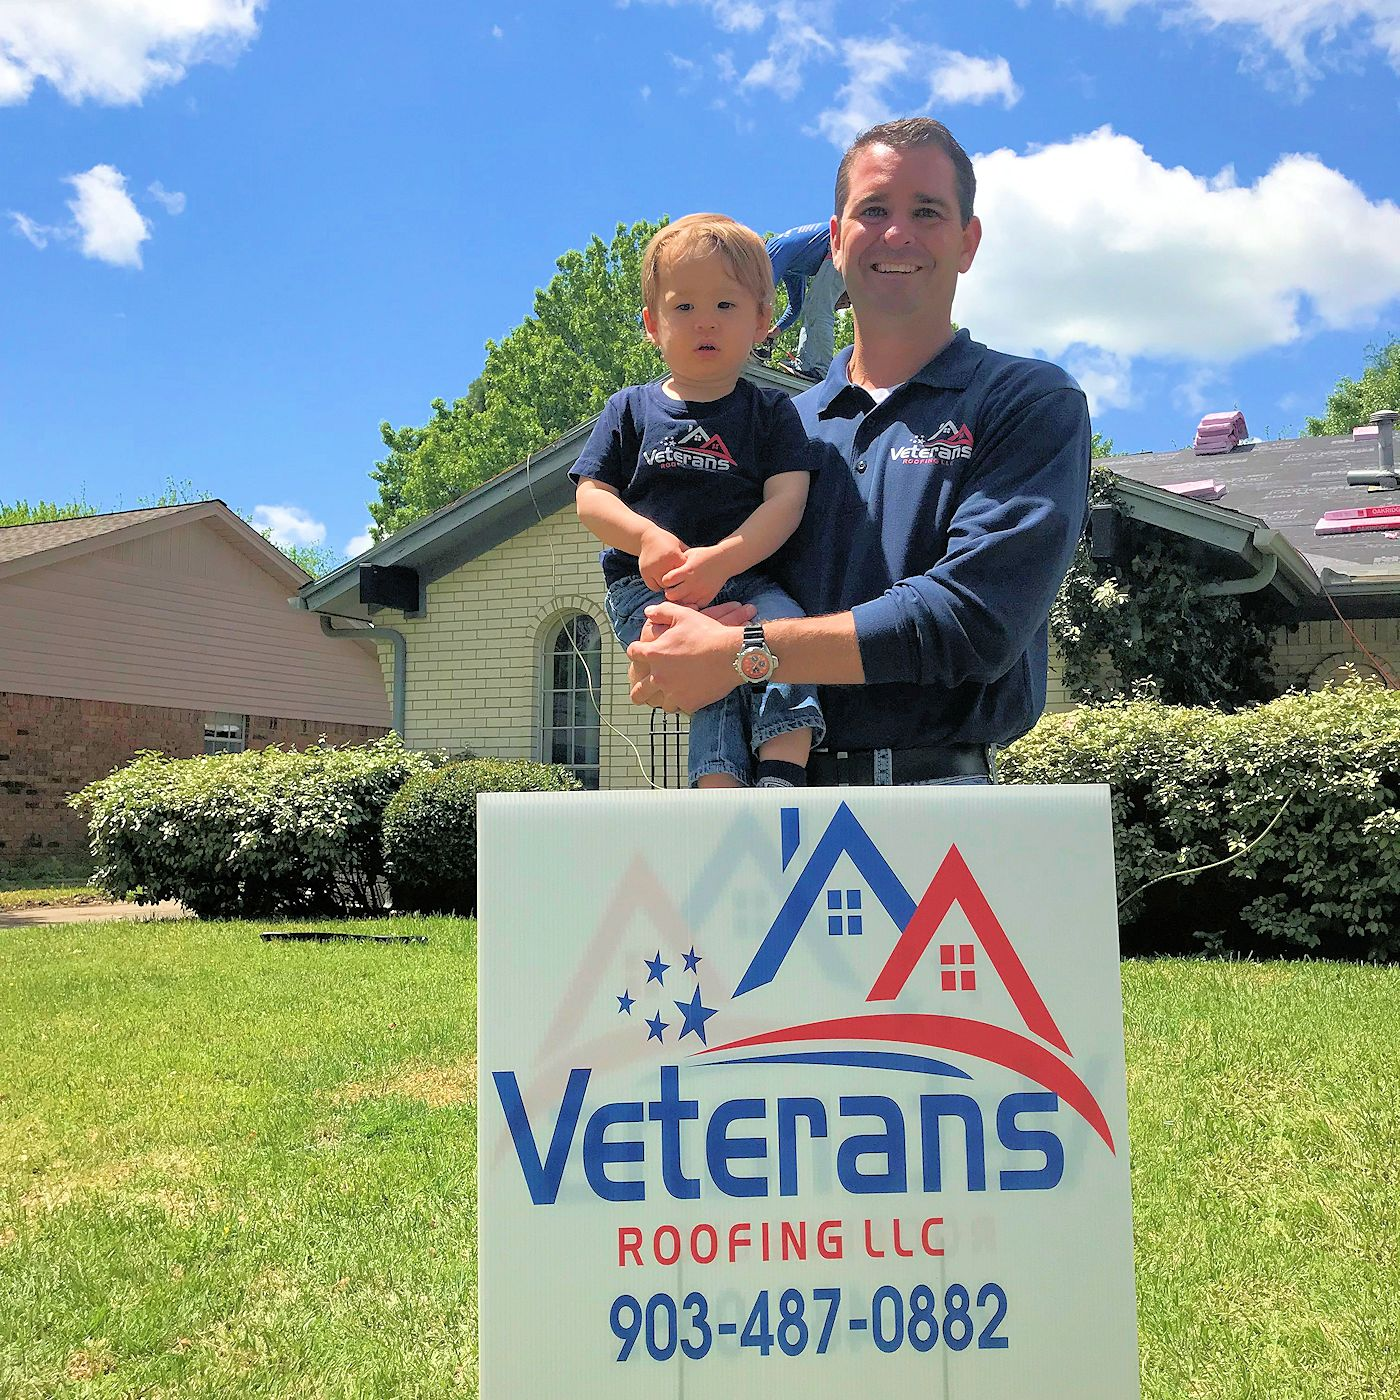 Veterans Roofing LLC - Sherman Texas Area Roofing Contractors